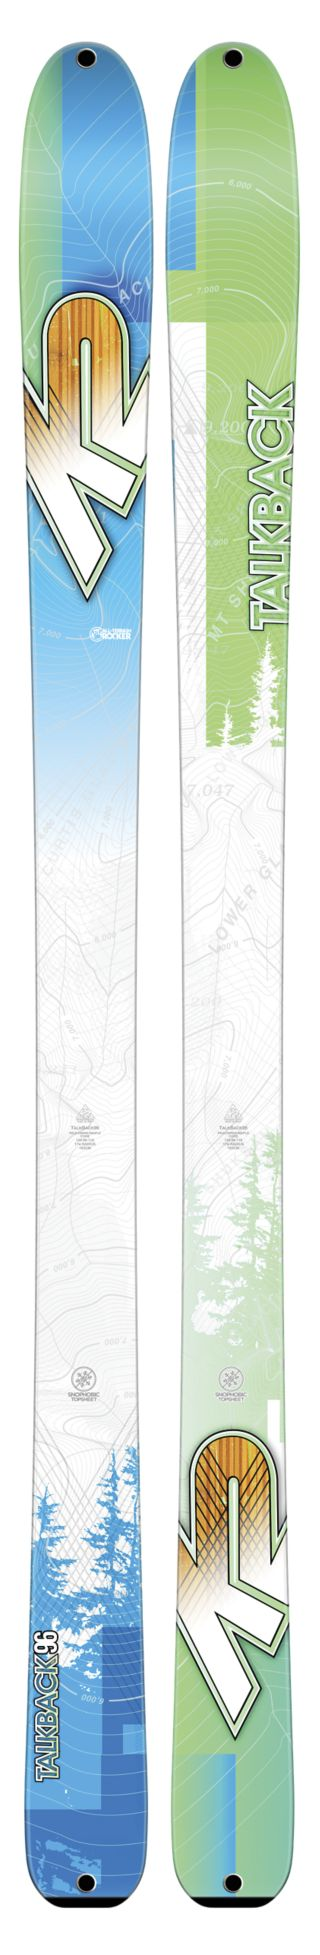 K2 Skis - Talkback 96 Ski